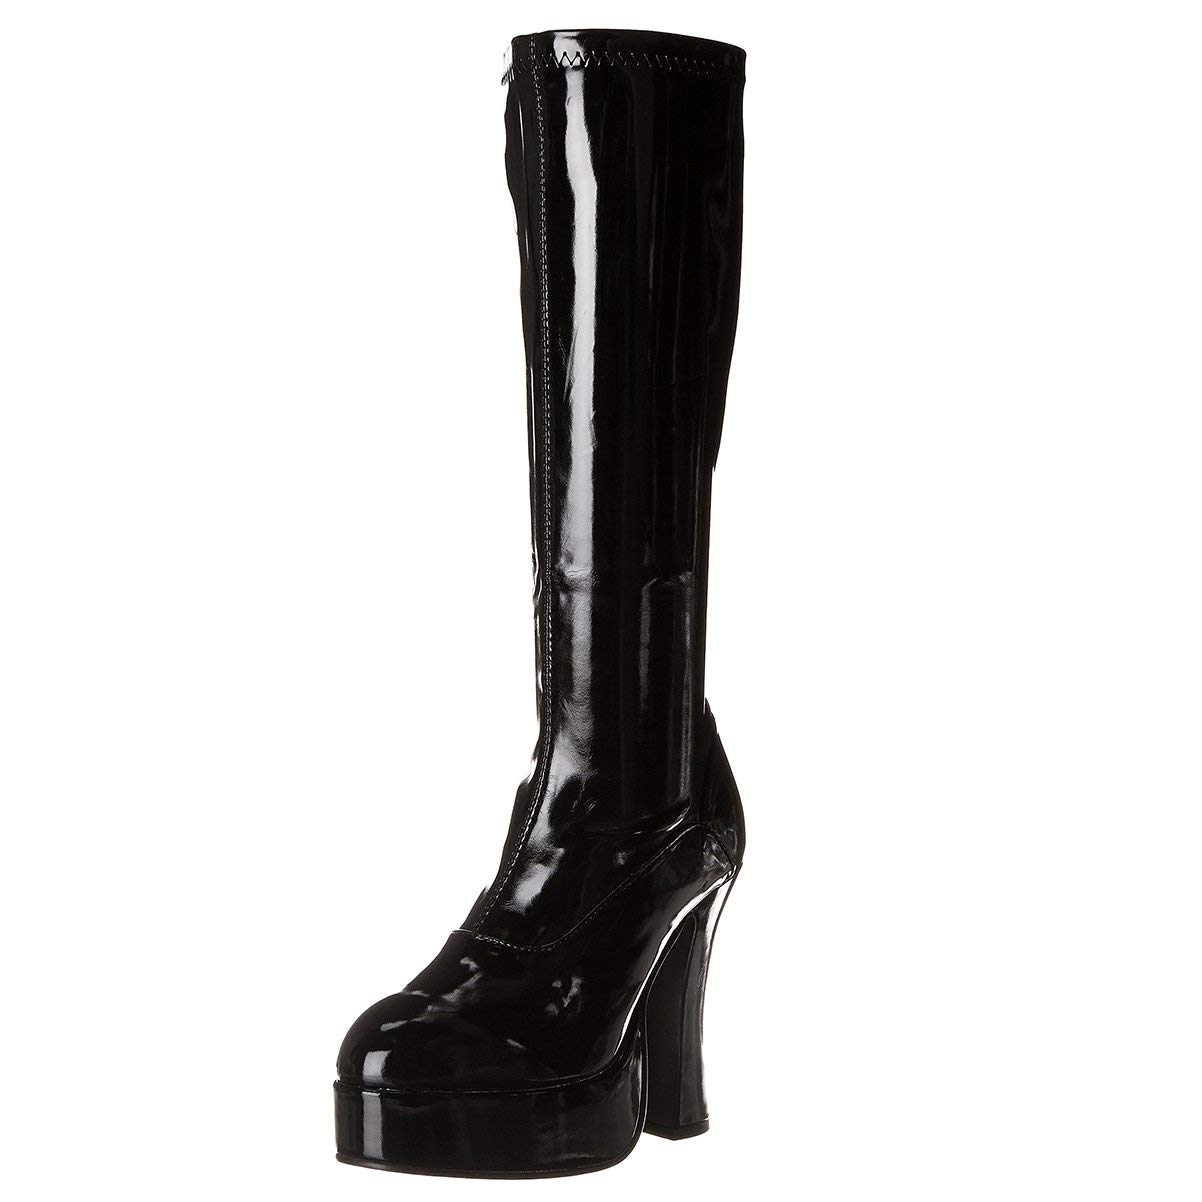 9a2f23f03473a Get Quotations · 5 Inch Sexy Platform Boots Knee Highs Chunky Heel Black  Red White